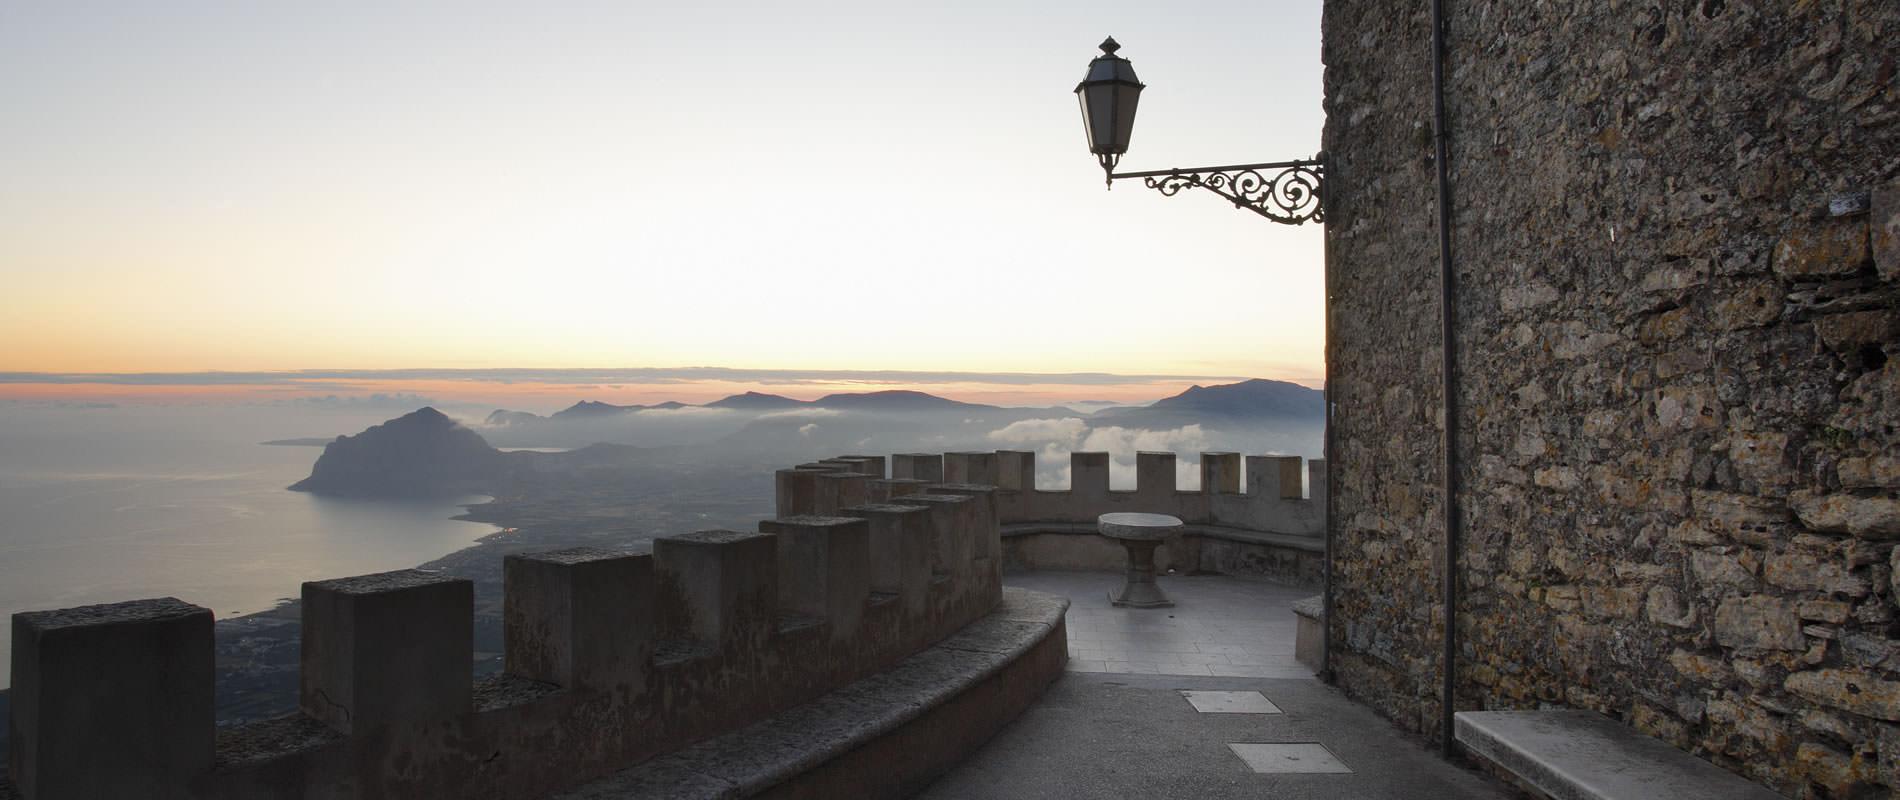 Panorami di Erice all'alba